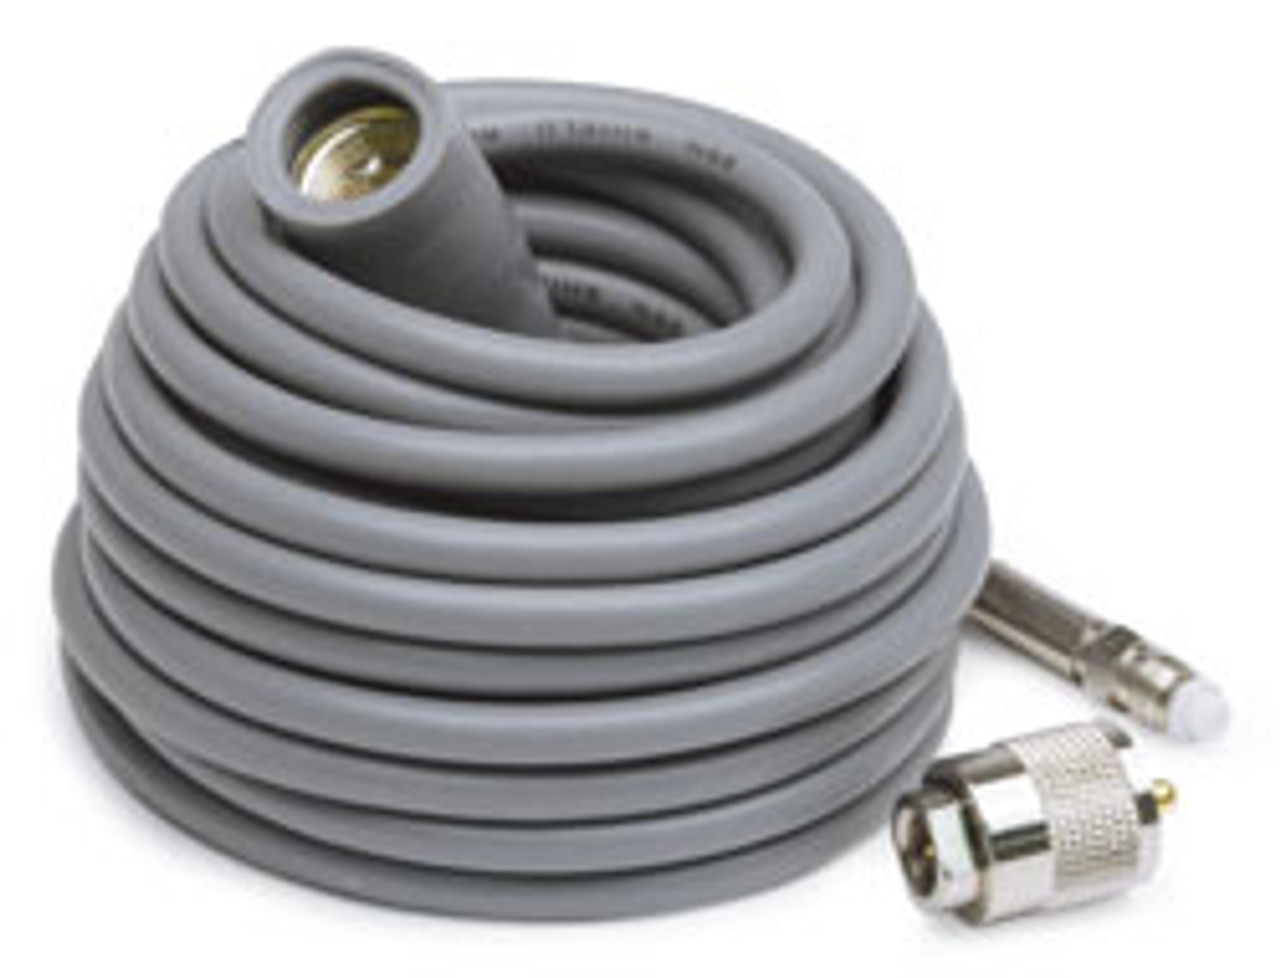 K40(R) 18' Super Mini-8 Antenna Cable with Removable FME Connector